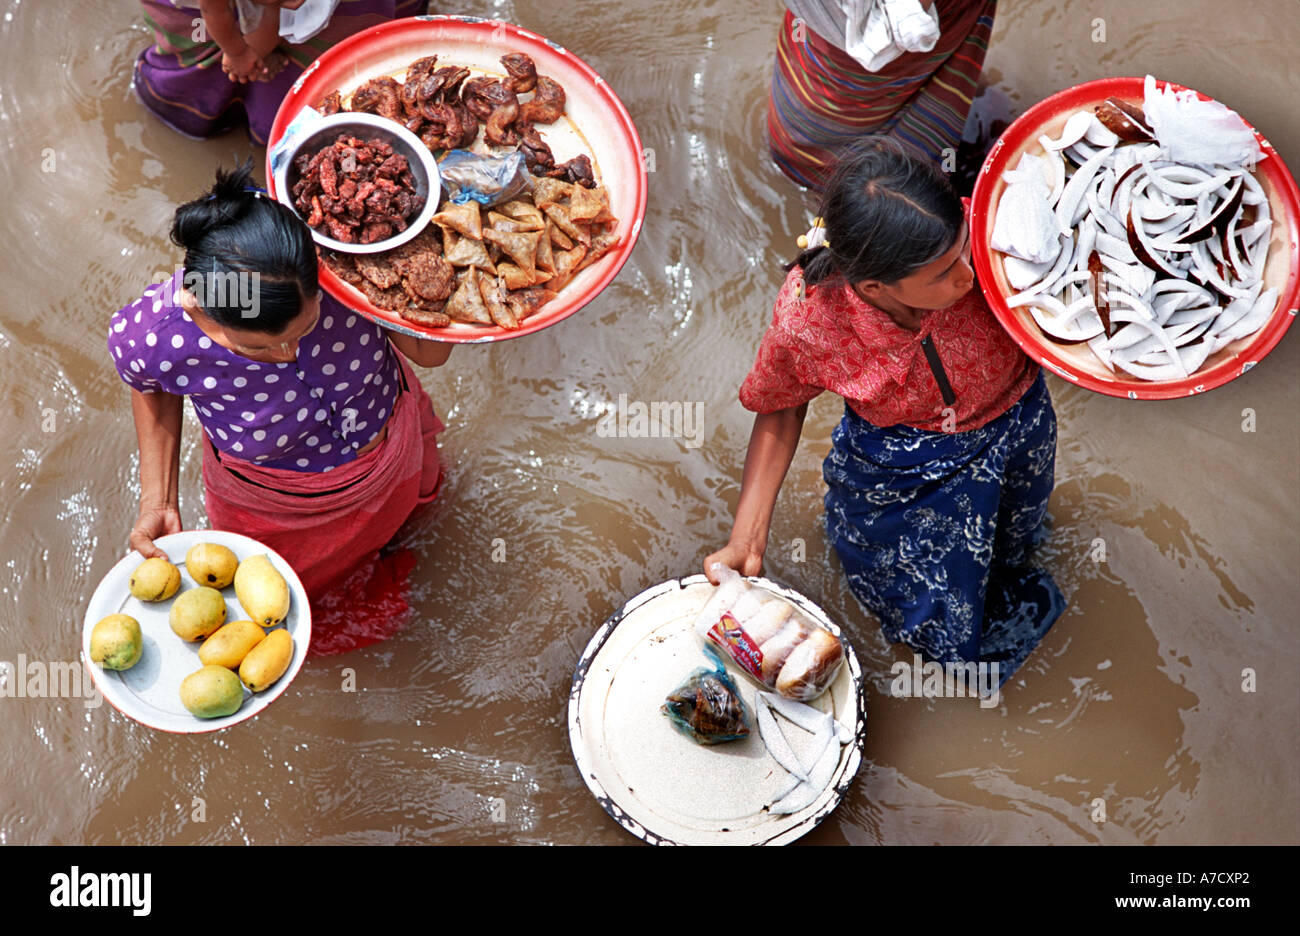 Women selling food from plates and trays to passengers on a passing boat En Route from Mandalay to Bagan Burma Myanmar - Stock Image